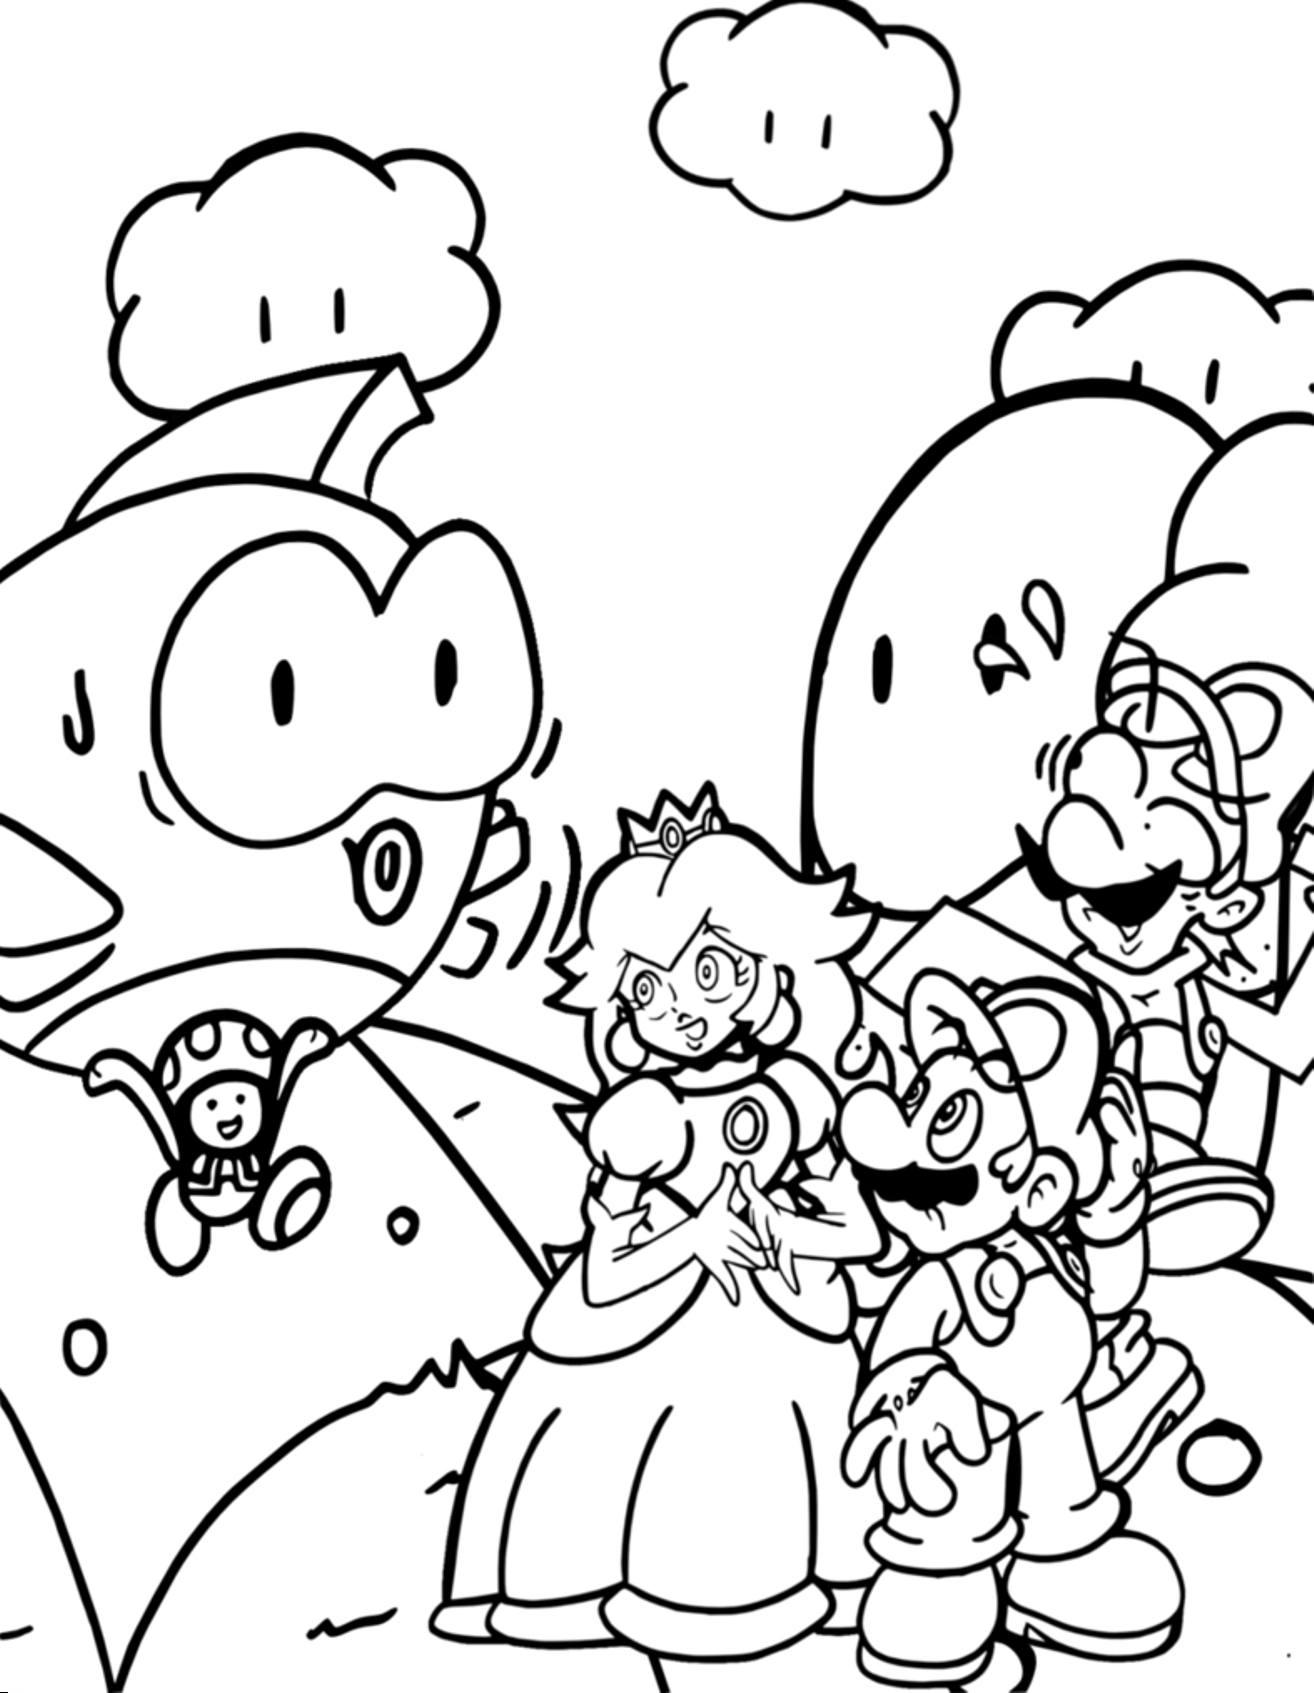 Awesome Coloring Pages Mario Printable In Pretty Free Printable Collection Of Toad Mario Drawing at Getdrawings Gallery